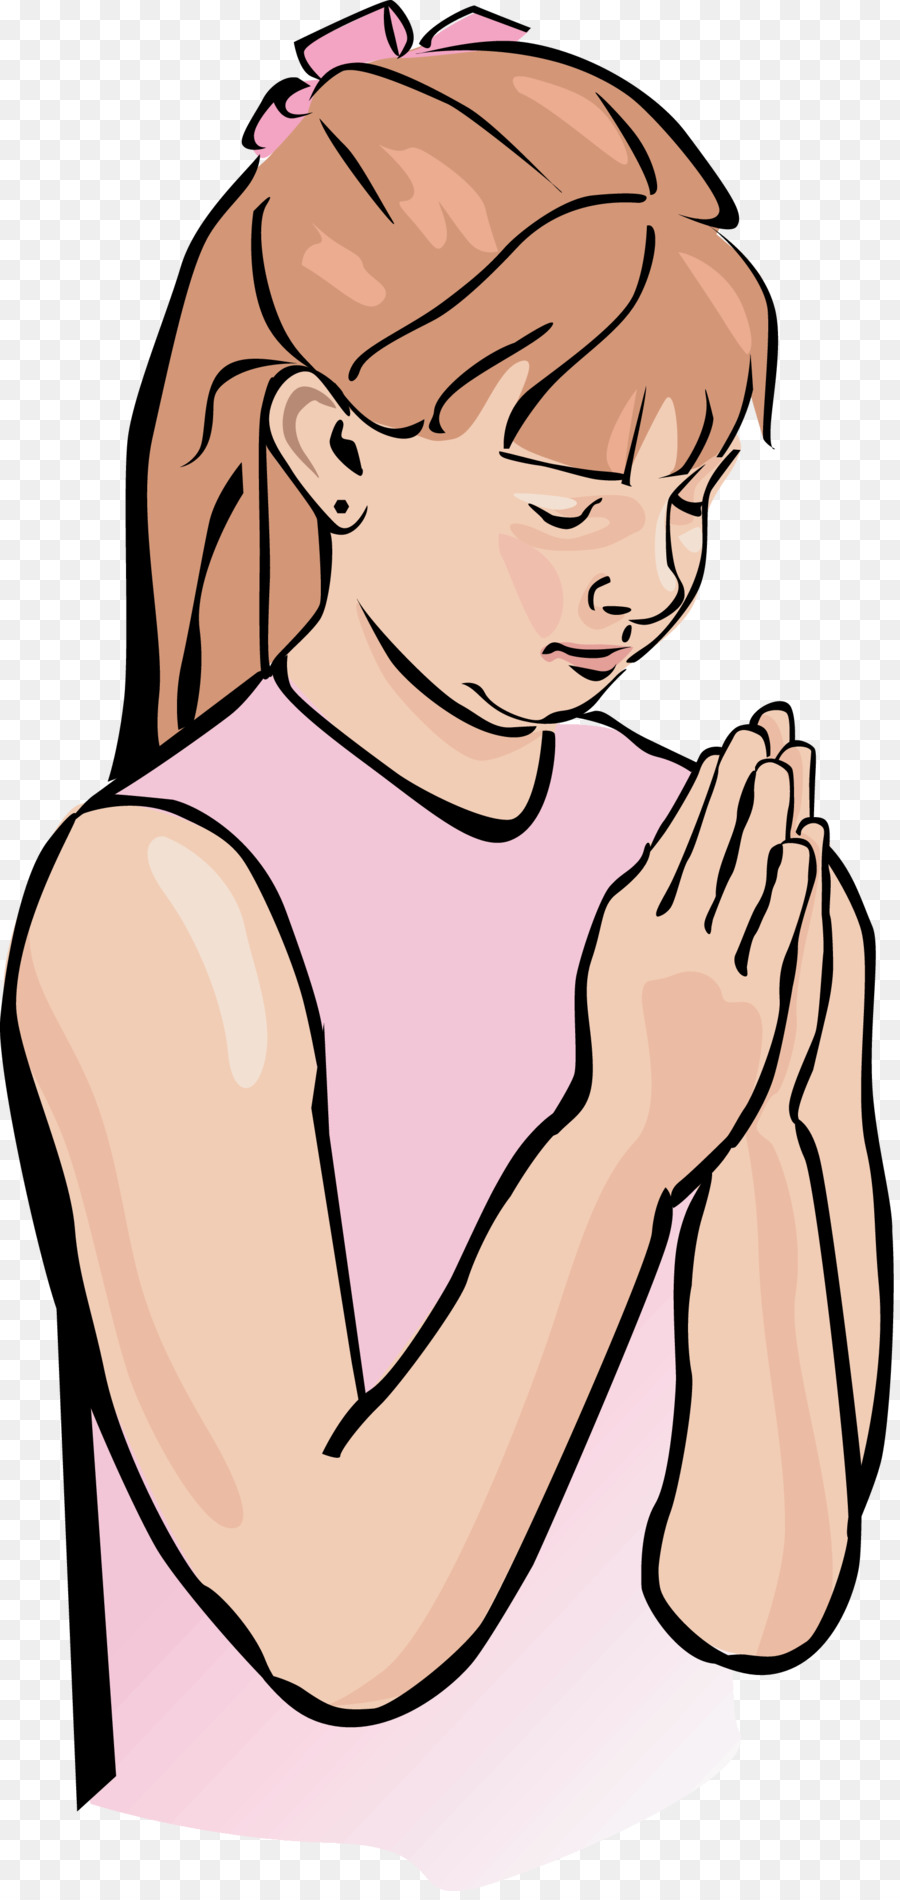 praying hands prayer clip art free prayer clipart png download rh kisspng com clip art prayer vigil clip art prayer vigil